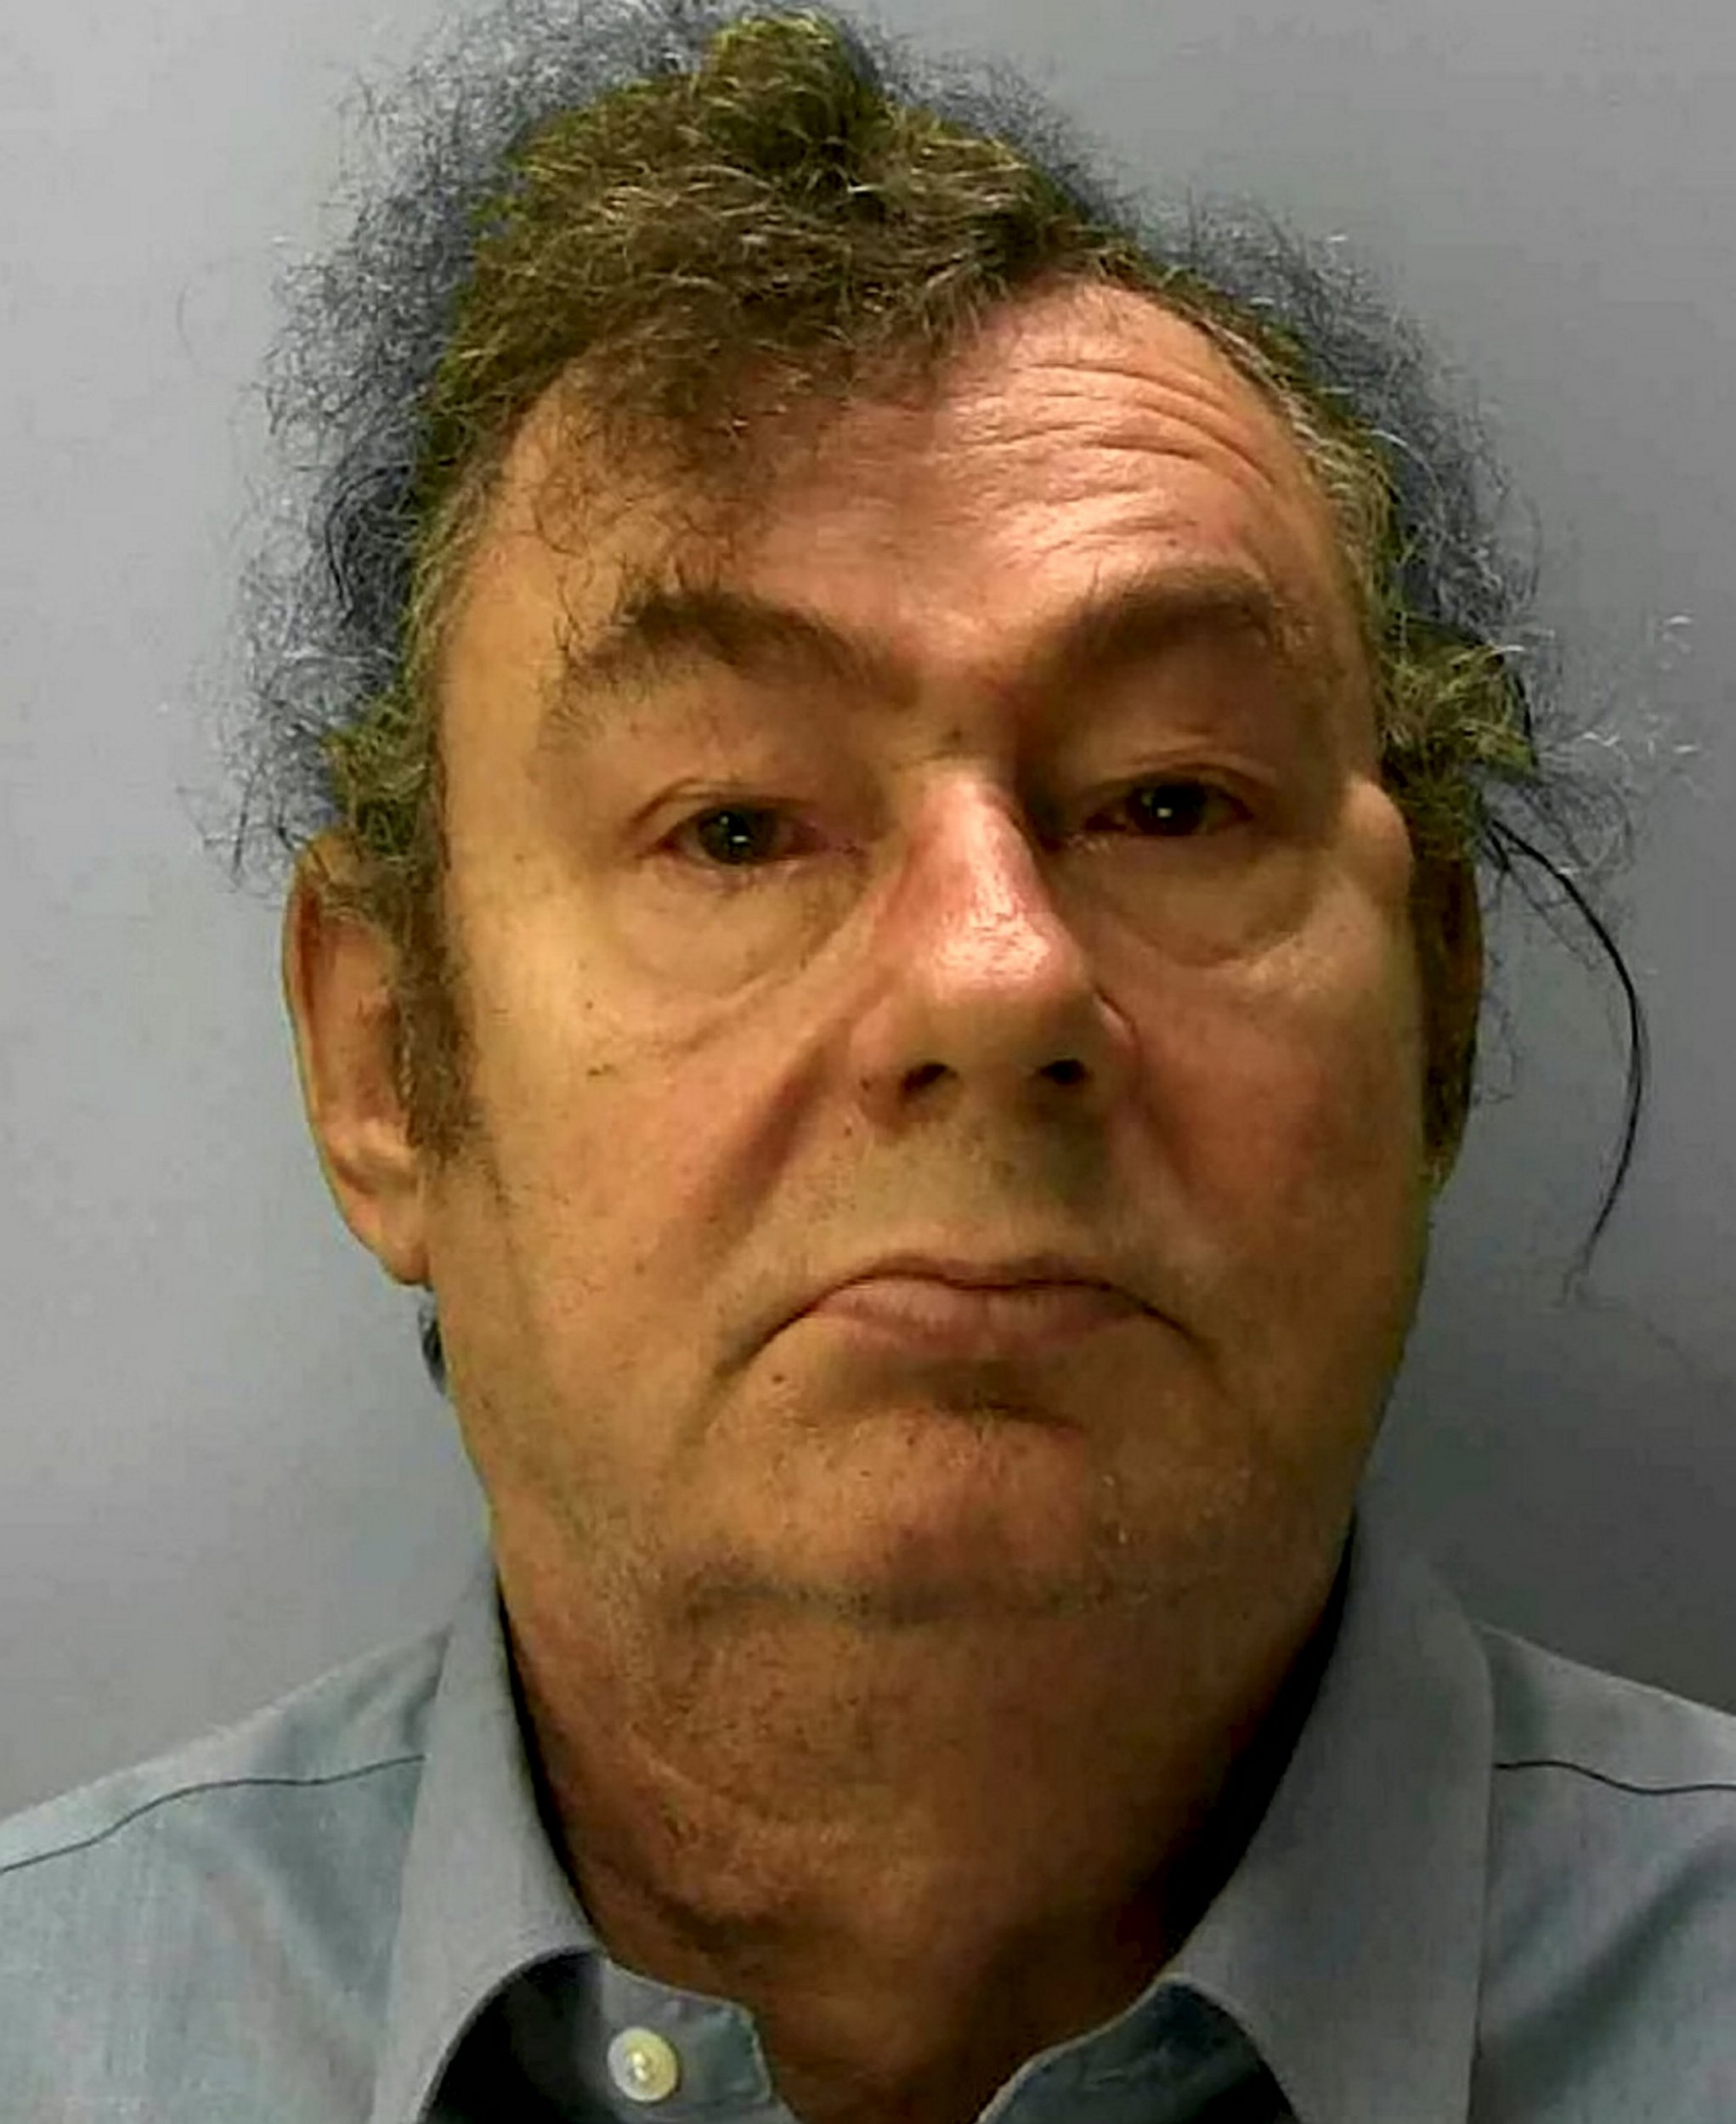 "Vincent Potter, 60.See National News story NNanthrax.A man who sent a letter to Prime Minister Theresa May threatening to poison her with the germ anthrax has been jailed for 18 months.Vincent Potter's letter, which began ""Dear BITCH"", was intercepted by a specialist postal officer on August 23 last year before it could reach the Prime Minister.Handing down the sentence Judge Rebecca Poulet said she had been advised a suspended sentence would be appropriate. But added: ""I'm afraid I do not consider this adequate or appropriately reflecting the serious nature of this offence."